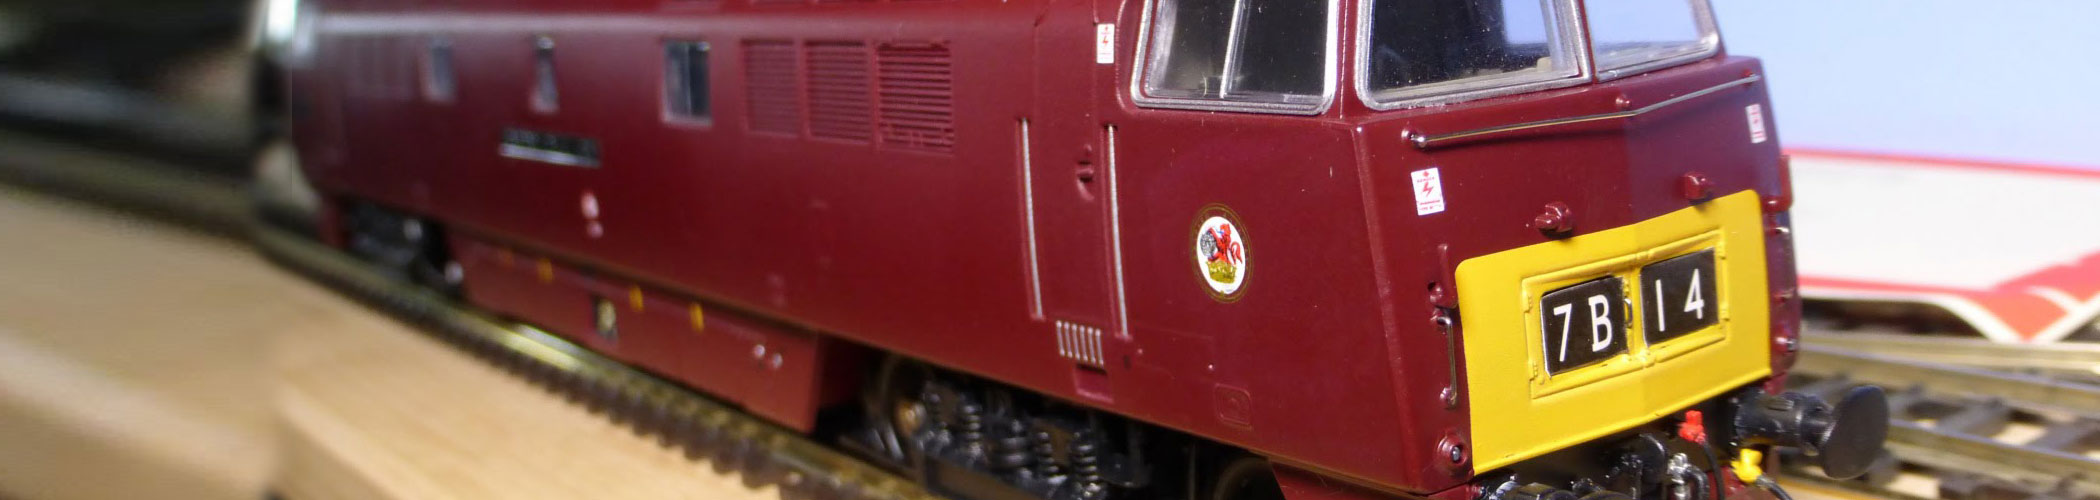 Dapol Locomotives - View our range of Dapol Diesel and Steam Locomotives, Coaches and Wagons